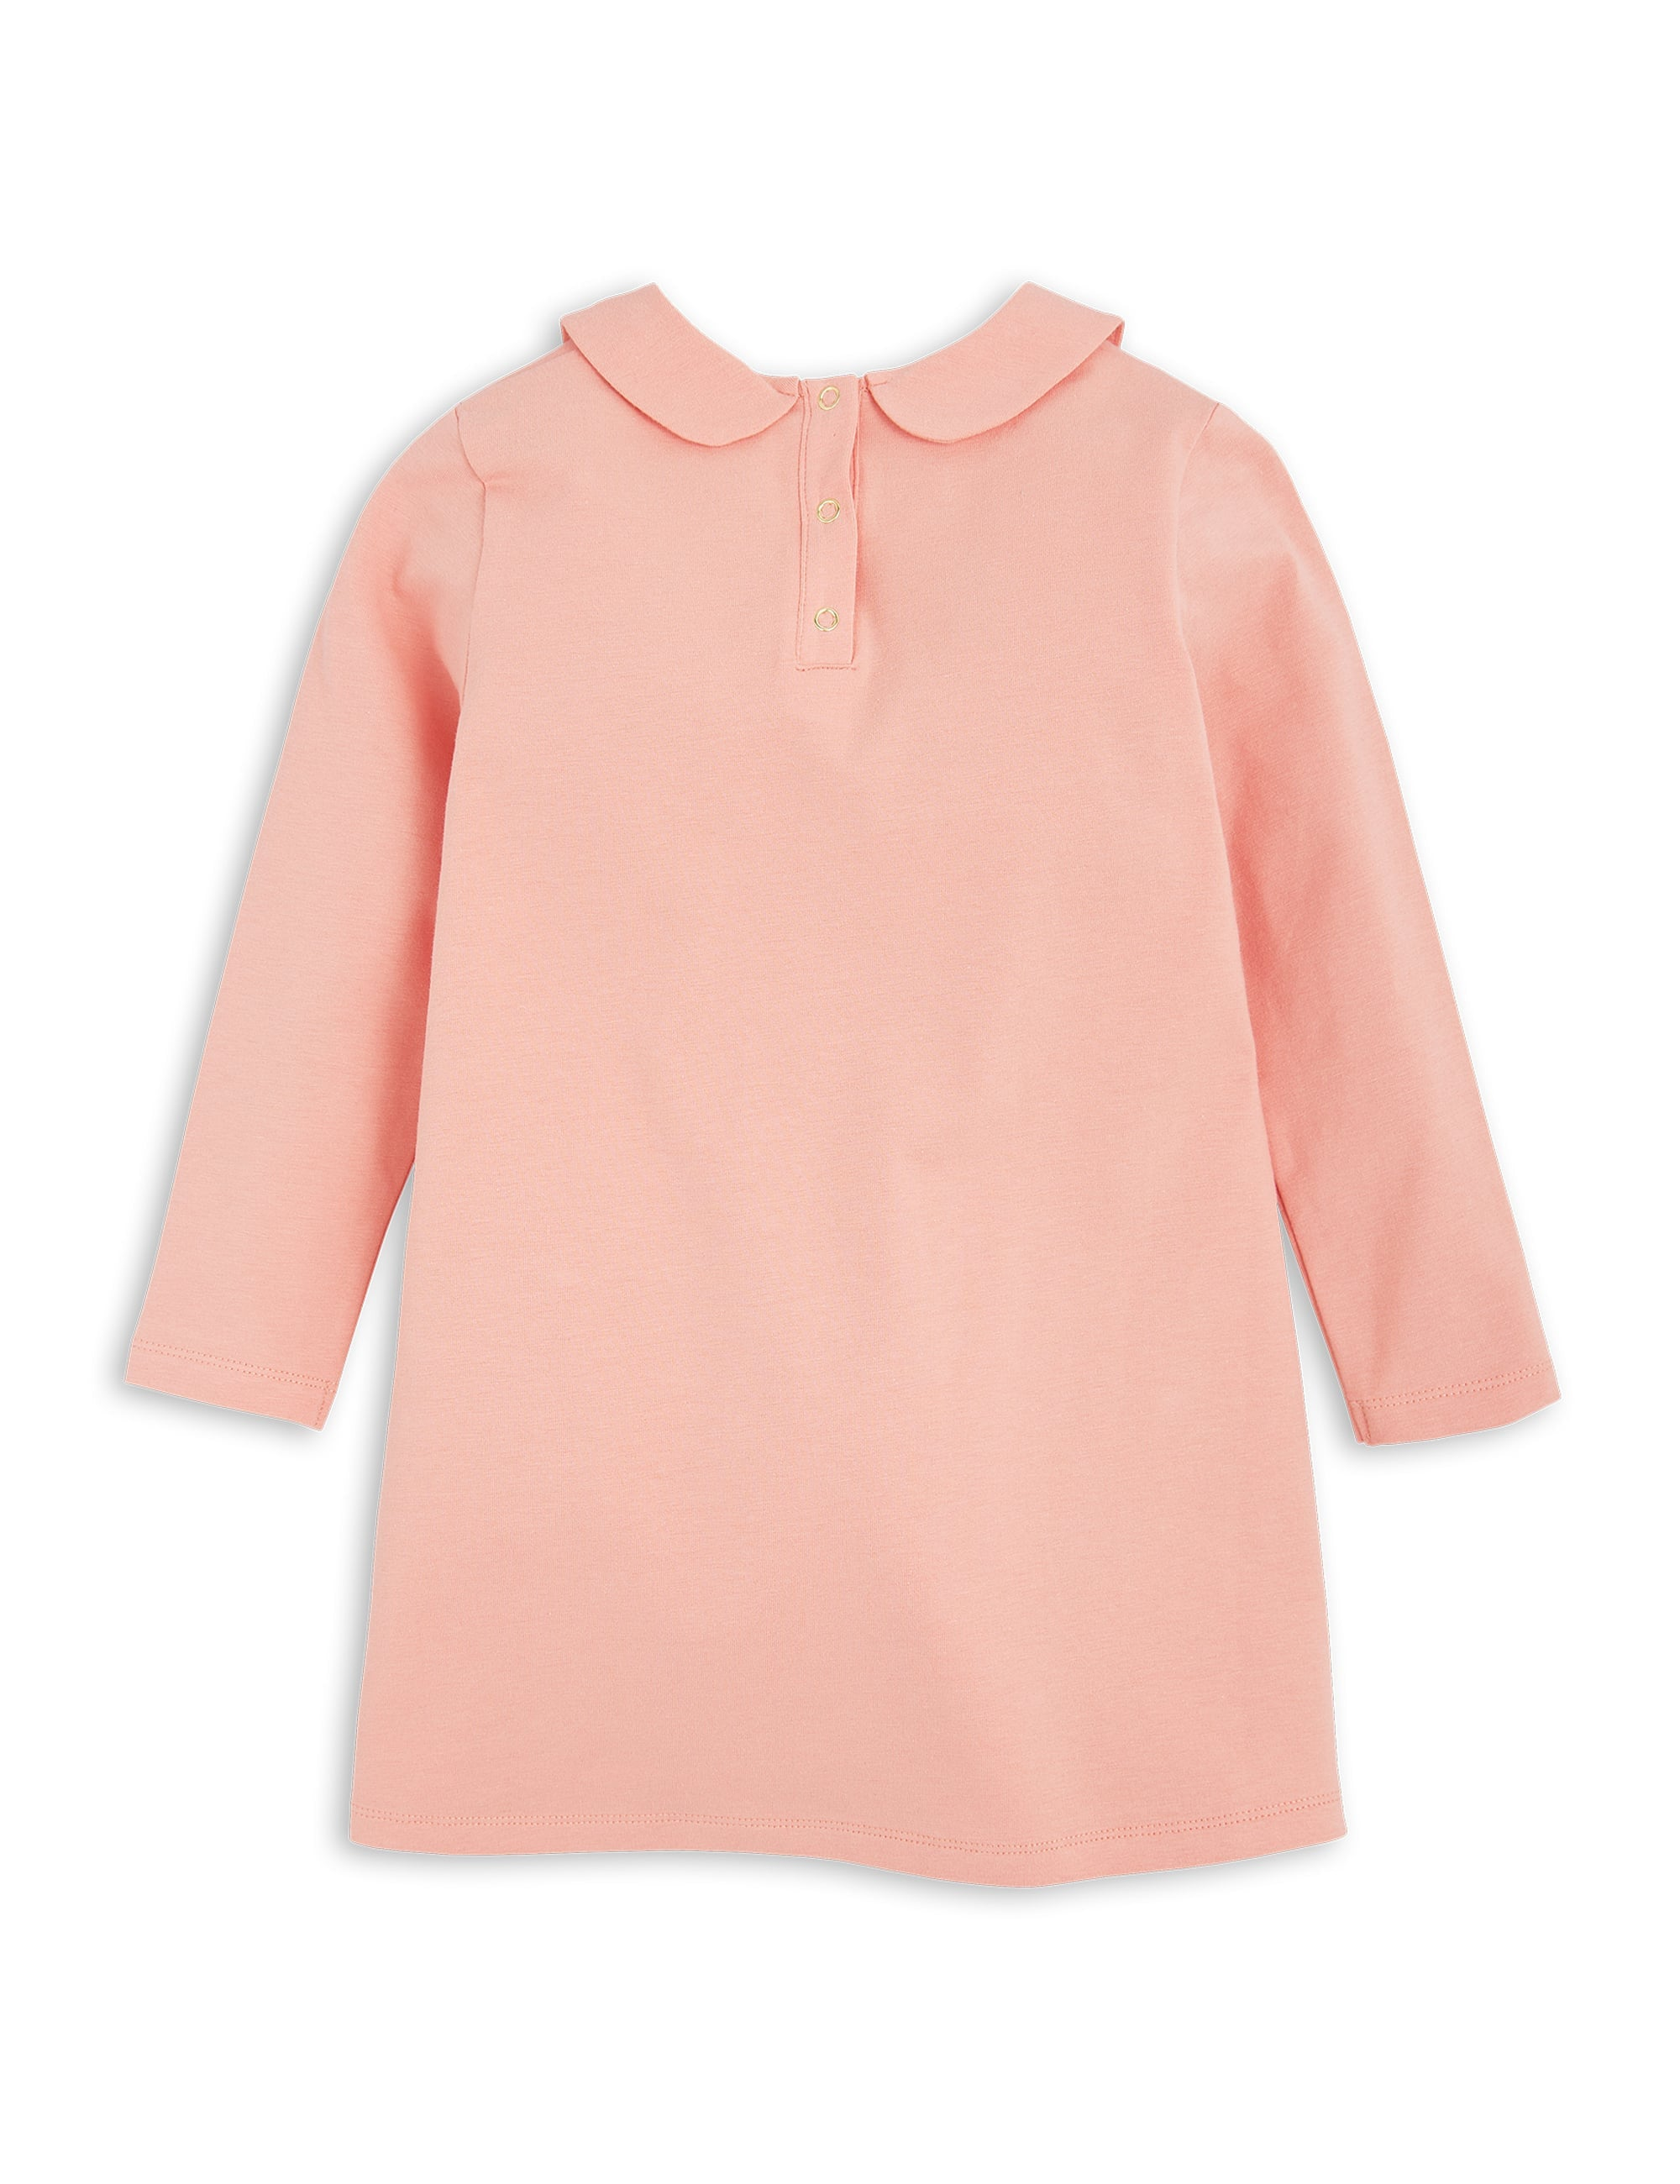 Rabbit Collar Dress Pink Mini Rodini | The Mini Life